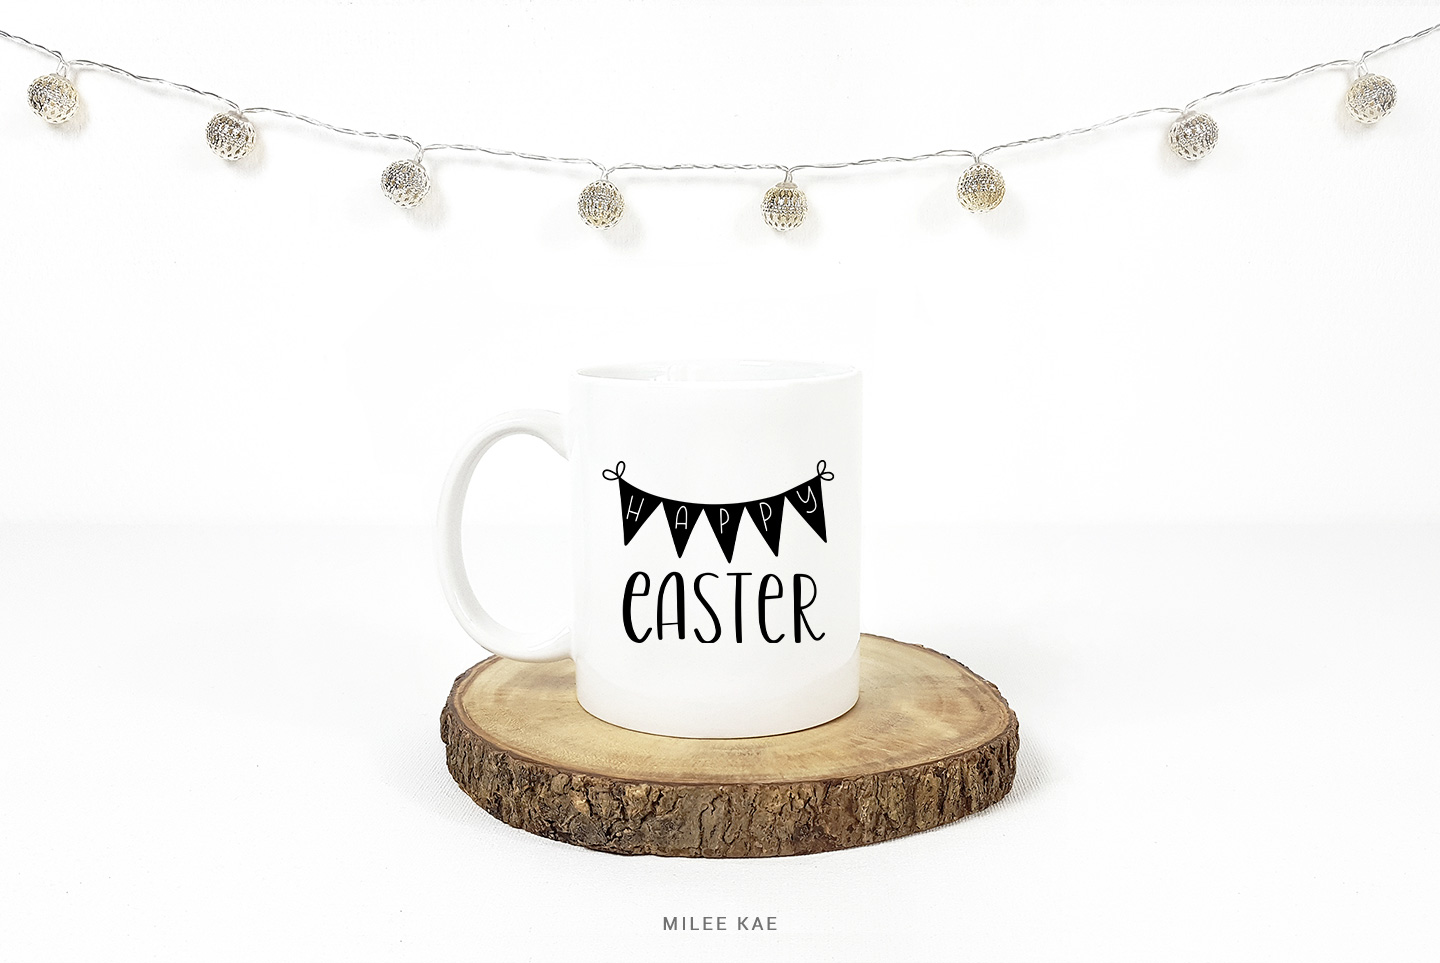 Happy Easter SVG, Cutting file, Decal example image 3